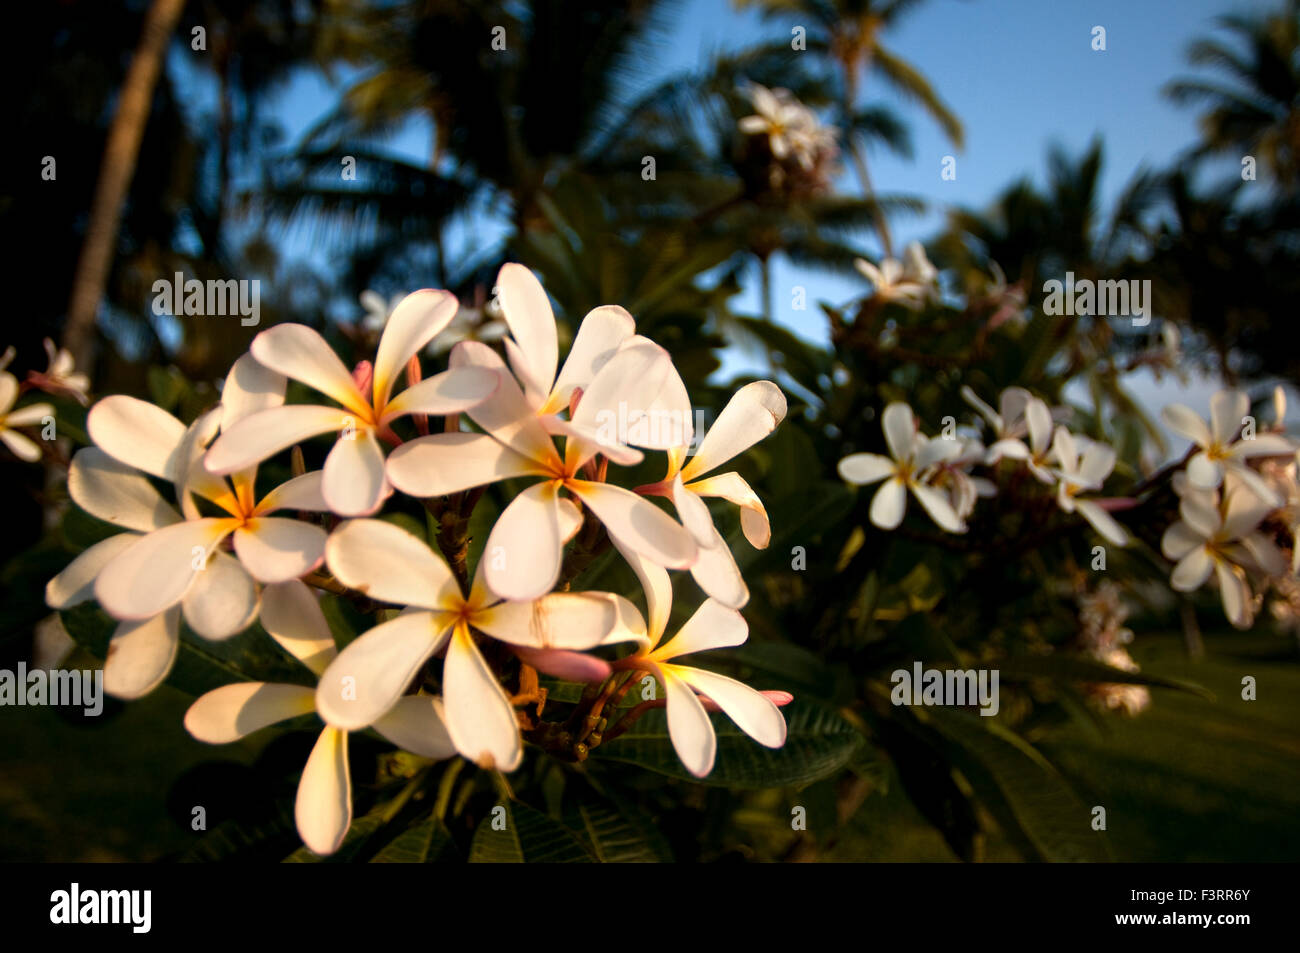 Plumera the most famous flowers of hawaii plumeria common name plumera the most famous flowers of hawaii plumeria common name frangipani is a genus of flowering plants in the dogbane fami izmirmasajfo